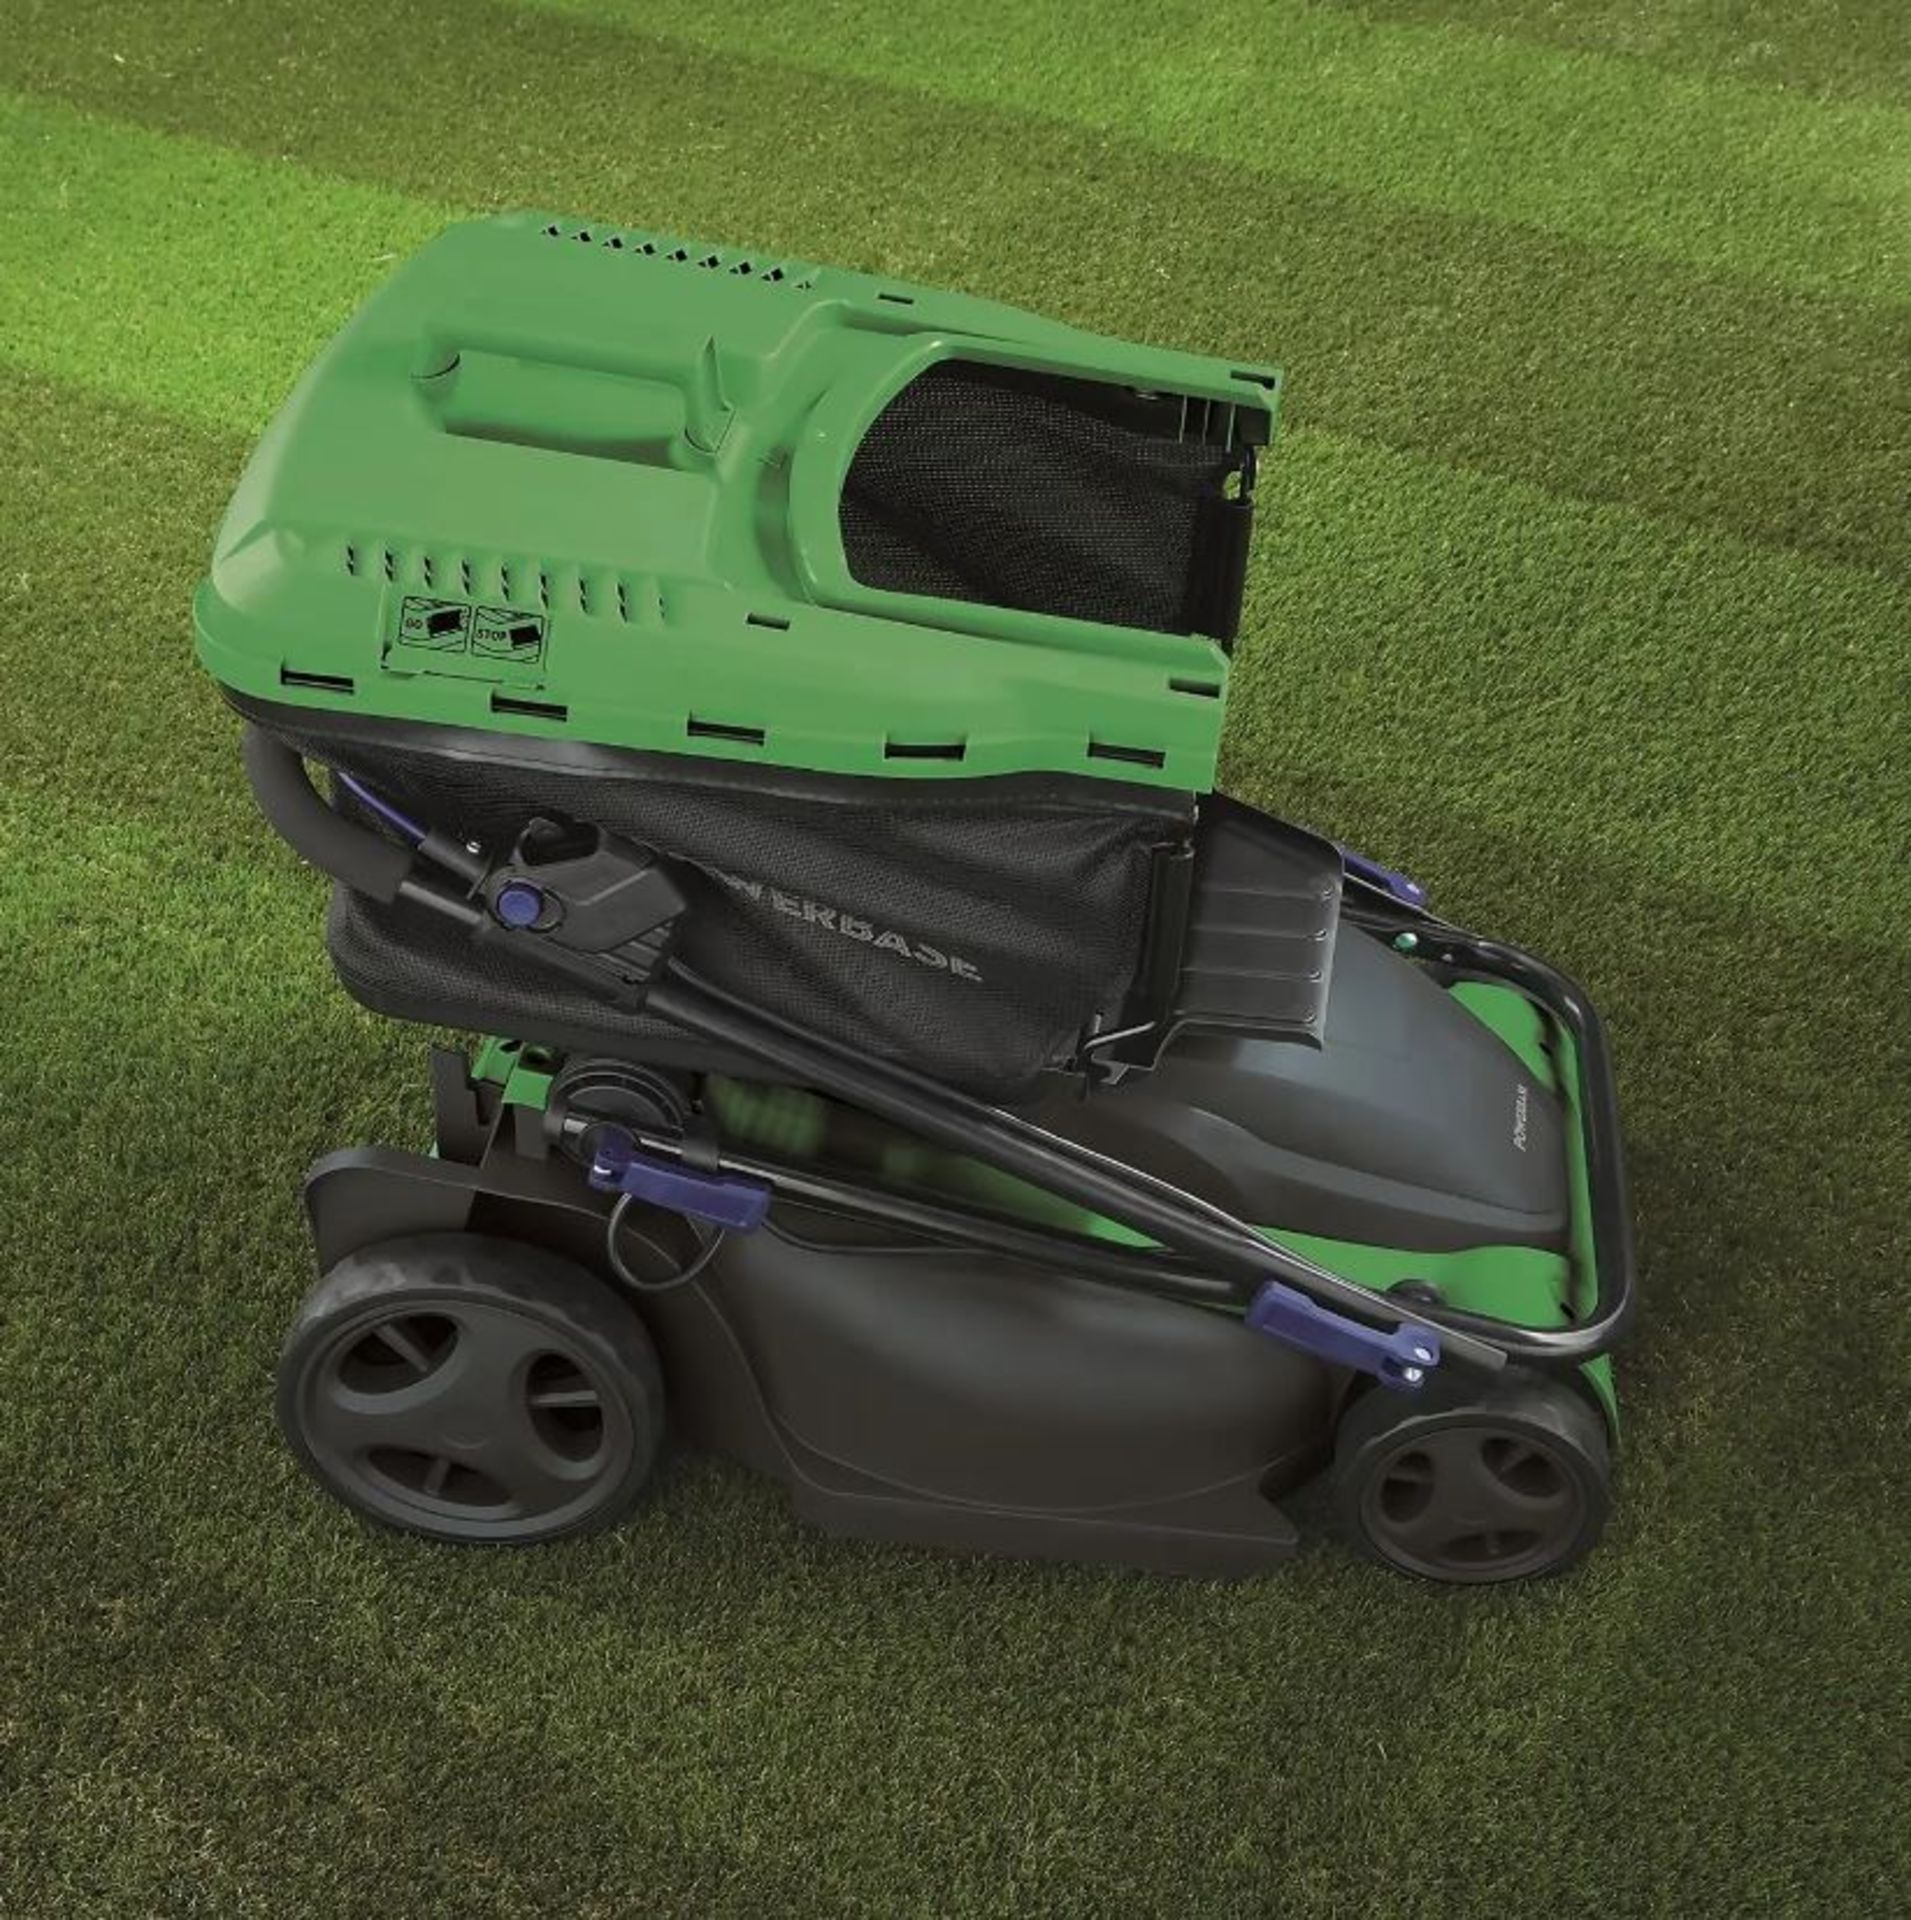 (P8) 1x Powerbase 41cm 1800W Electric Rotary Lawn Mower RRP £119. Contents Appear As New – Clean, - Image 2 of 5